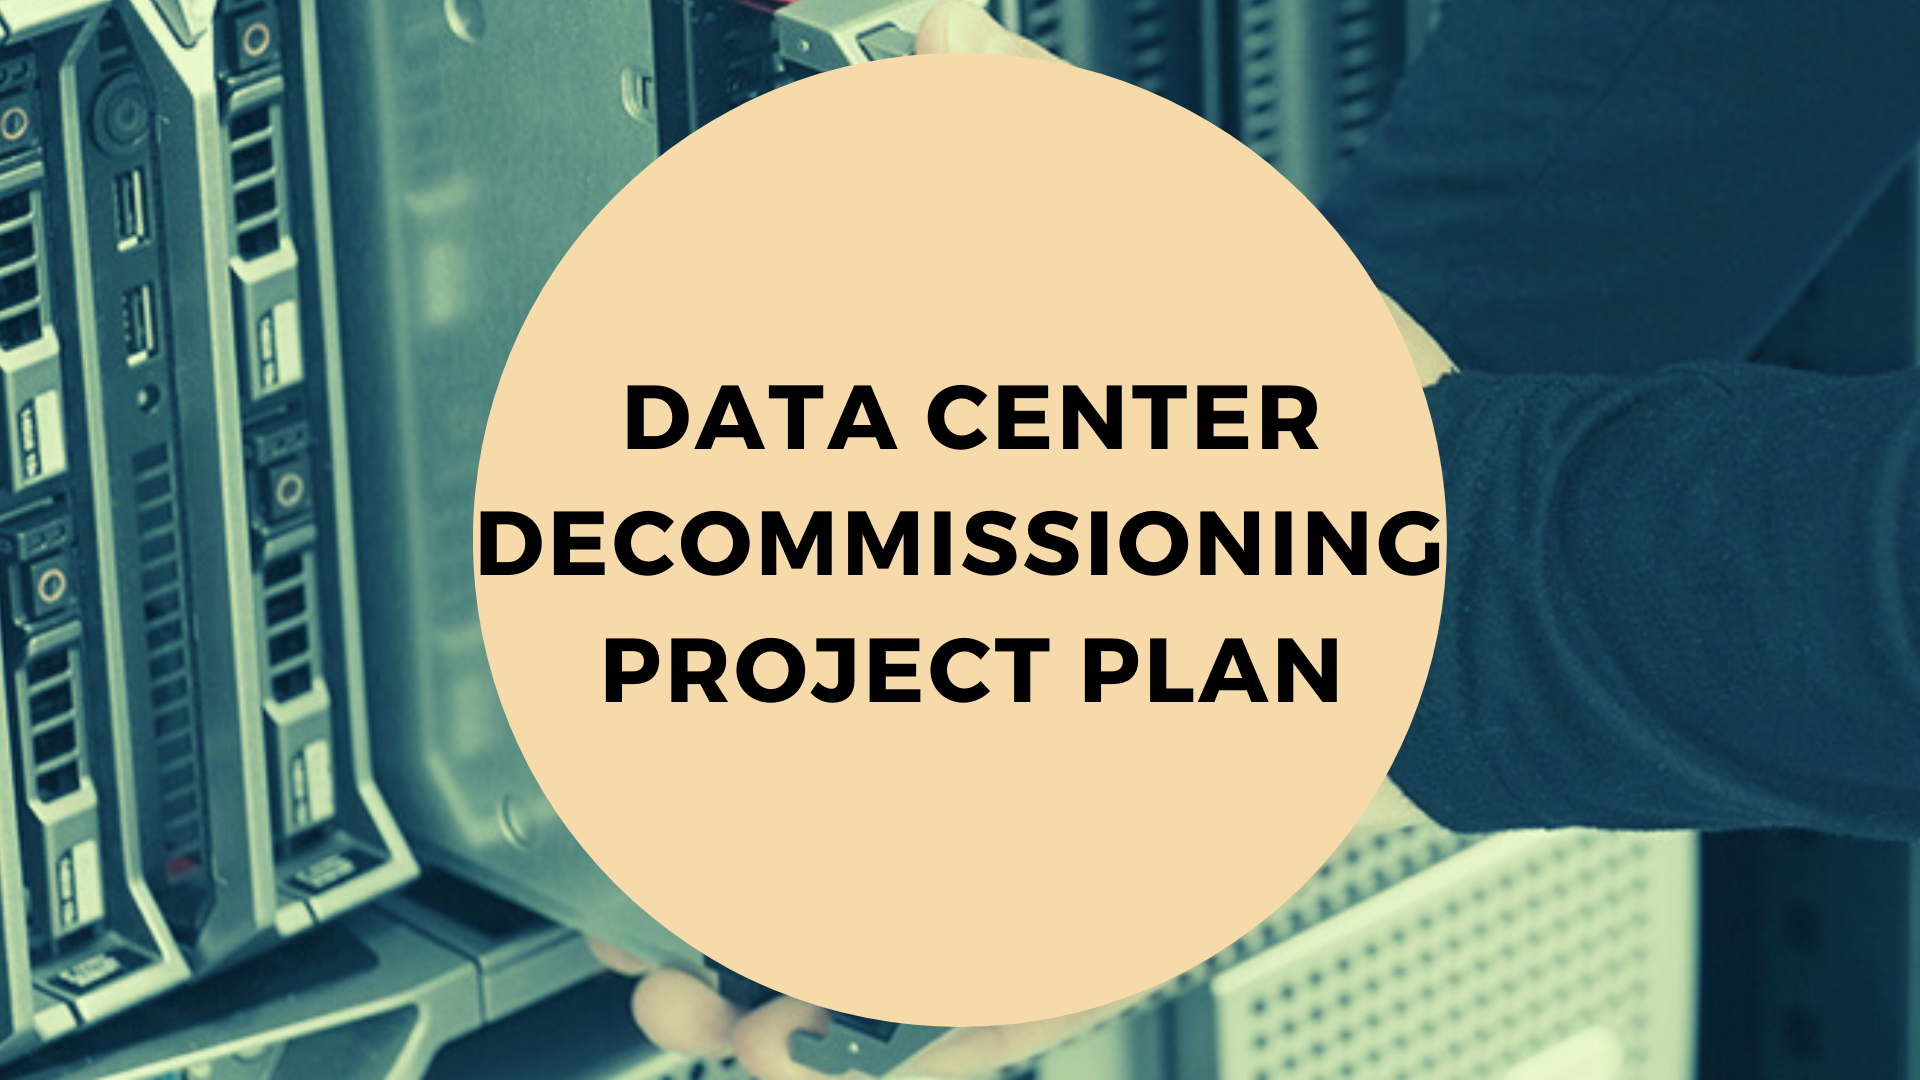 Data-center-decommissioning-project-plan